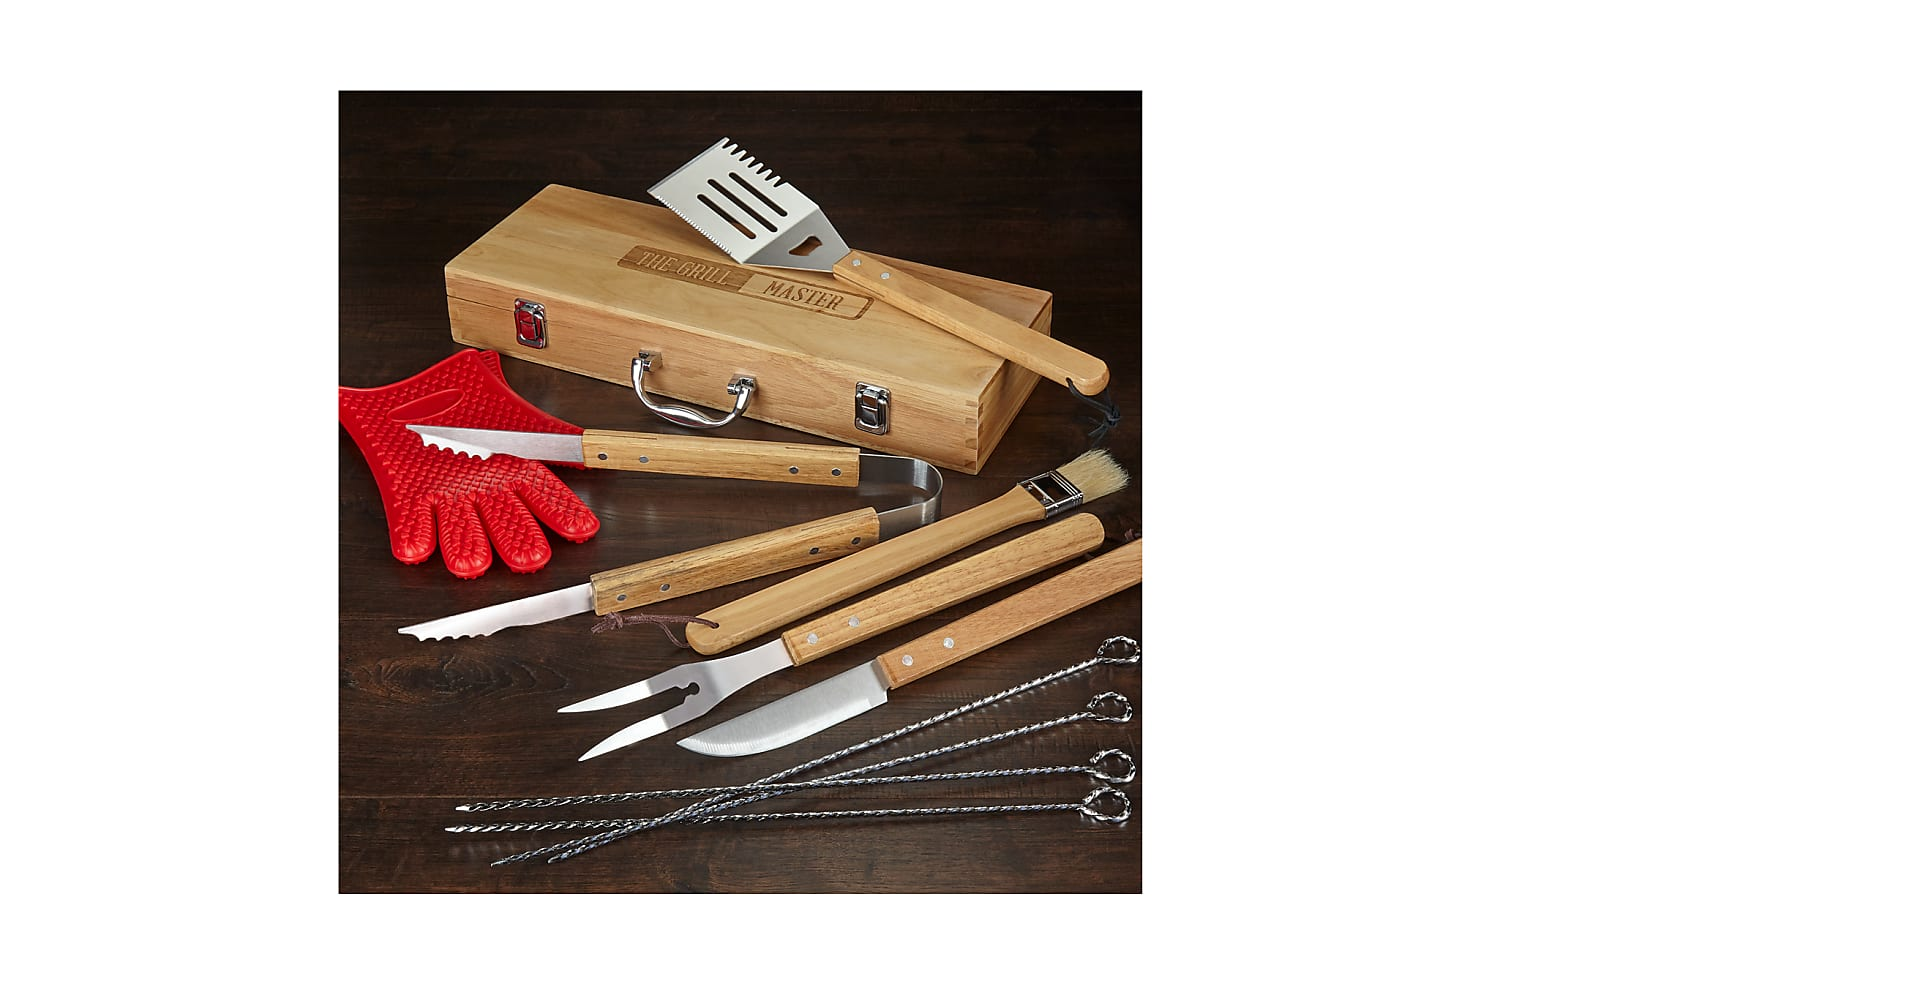 Grill Master Barbeque Tool Set - Image 3 Of 3